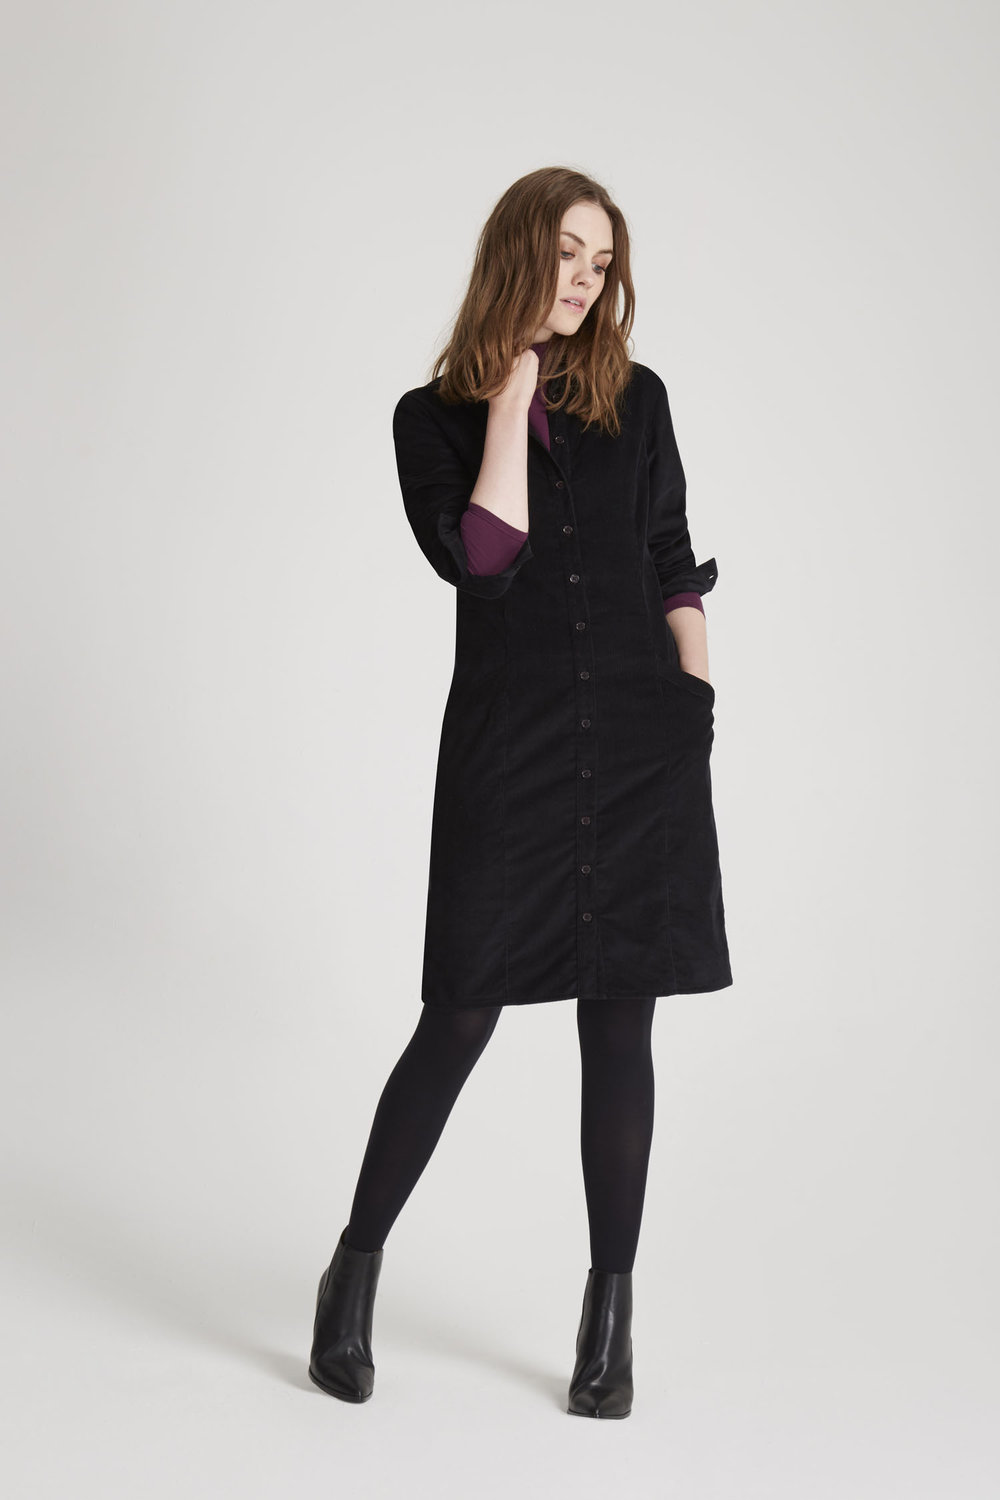 verena-corduroy-shirt-dress-in-black-8e9dfdfe693d.jpg